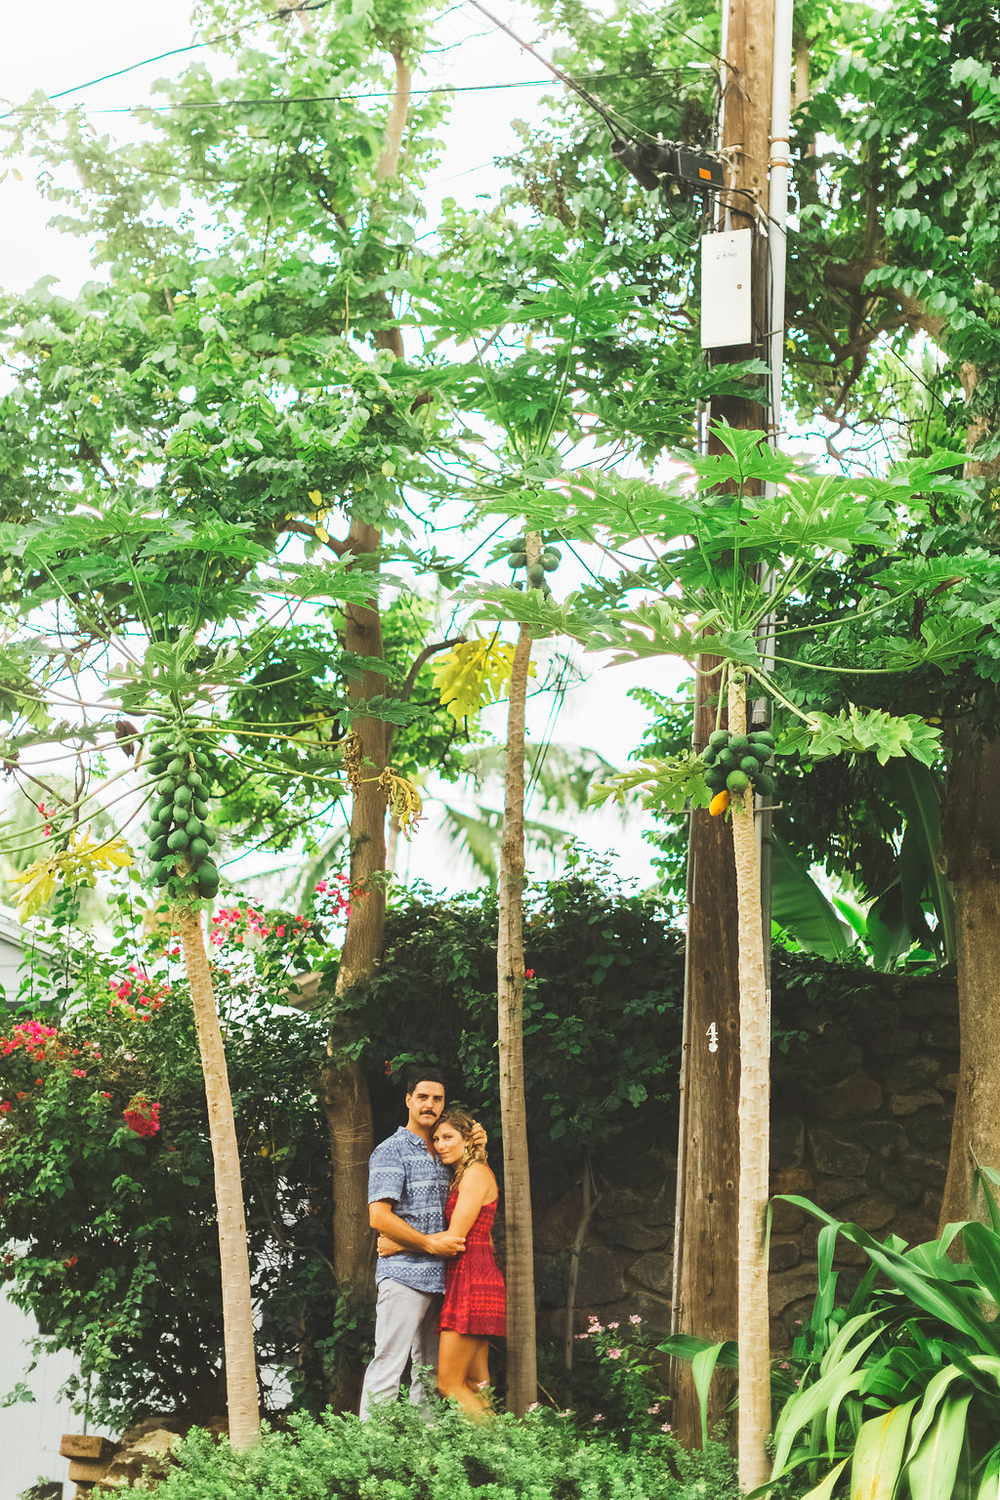 angie-diaz-photography-maui-engagement-sarah-mathias-8.jpg